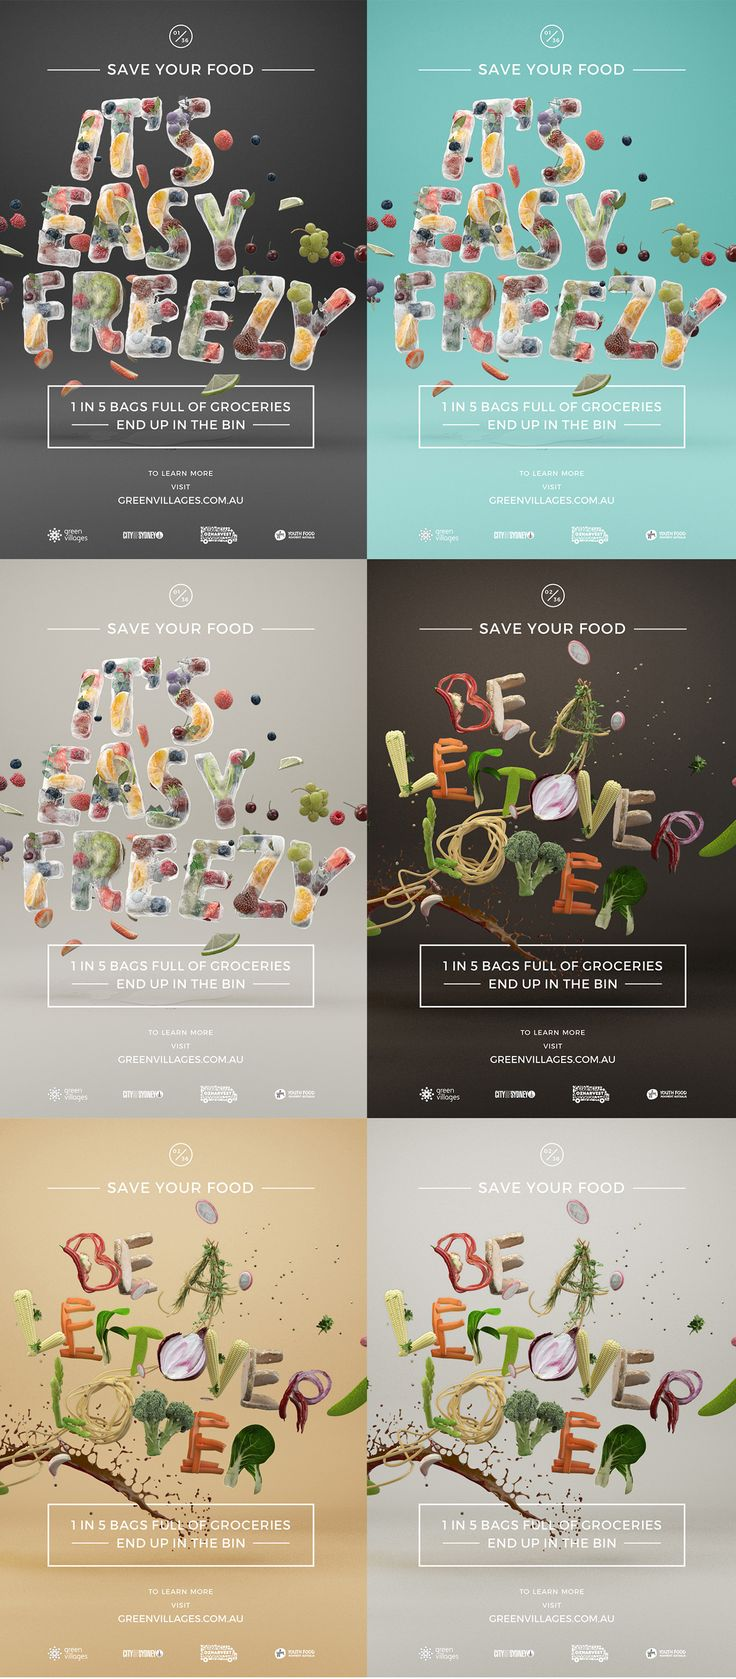 Poster design environmental issues - Find This Pin And More On 02 Editorial Design By Pamina1208